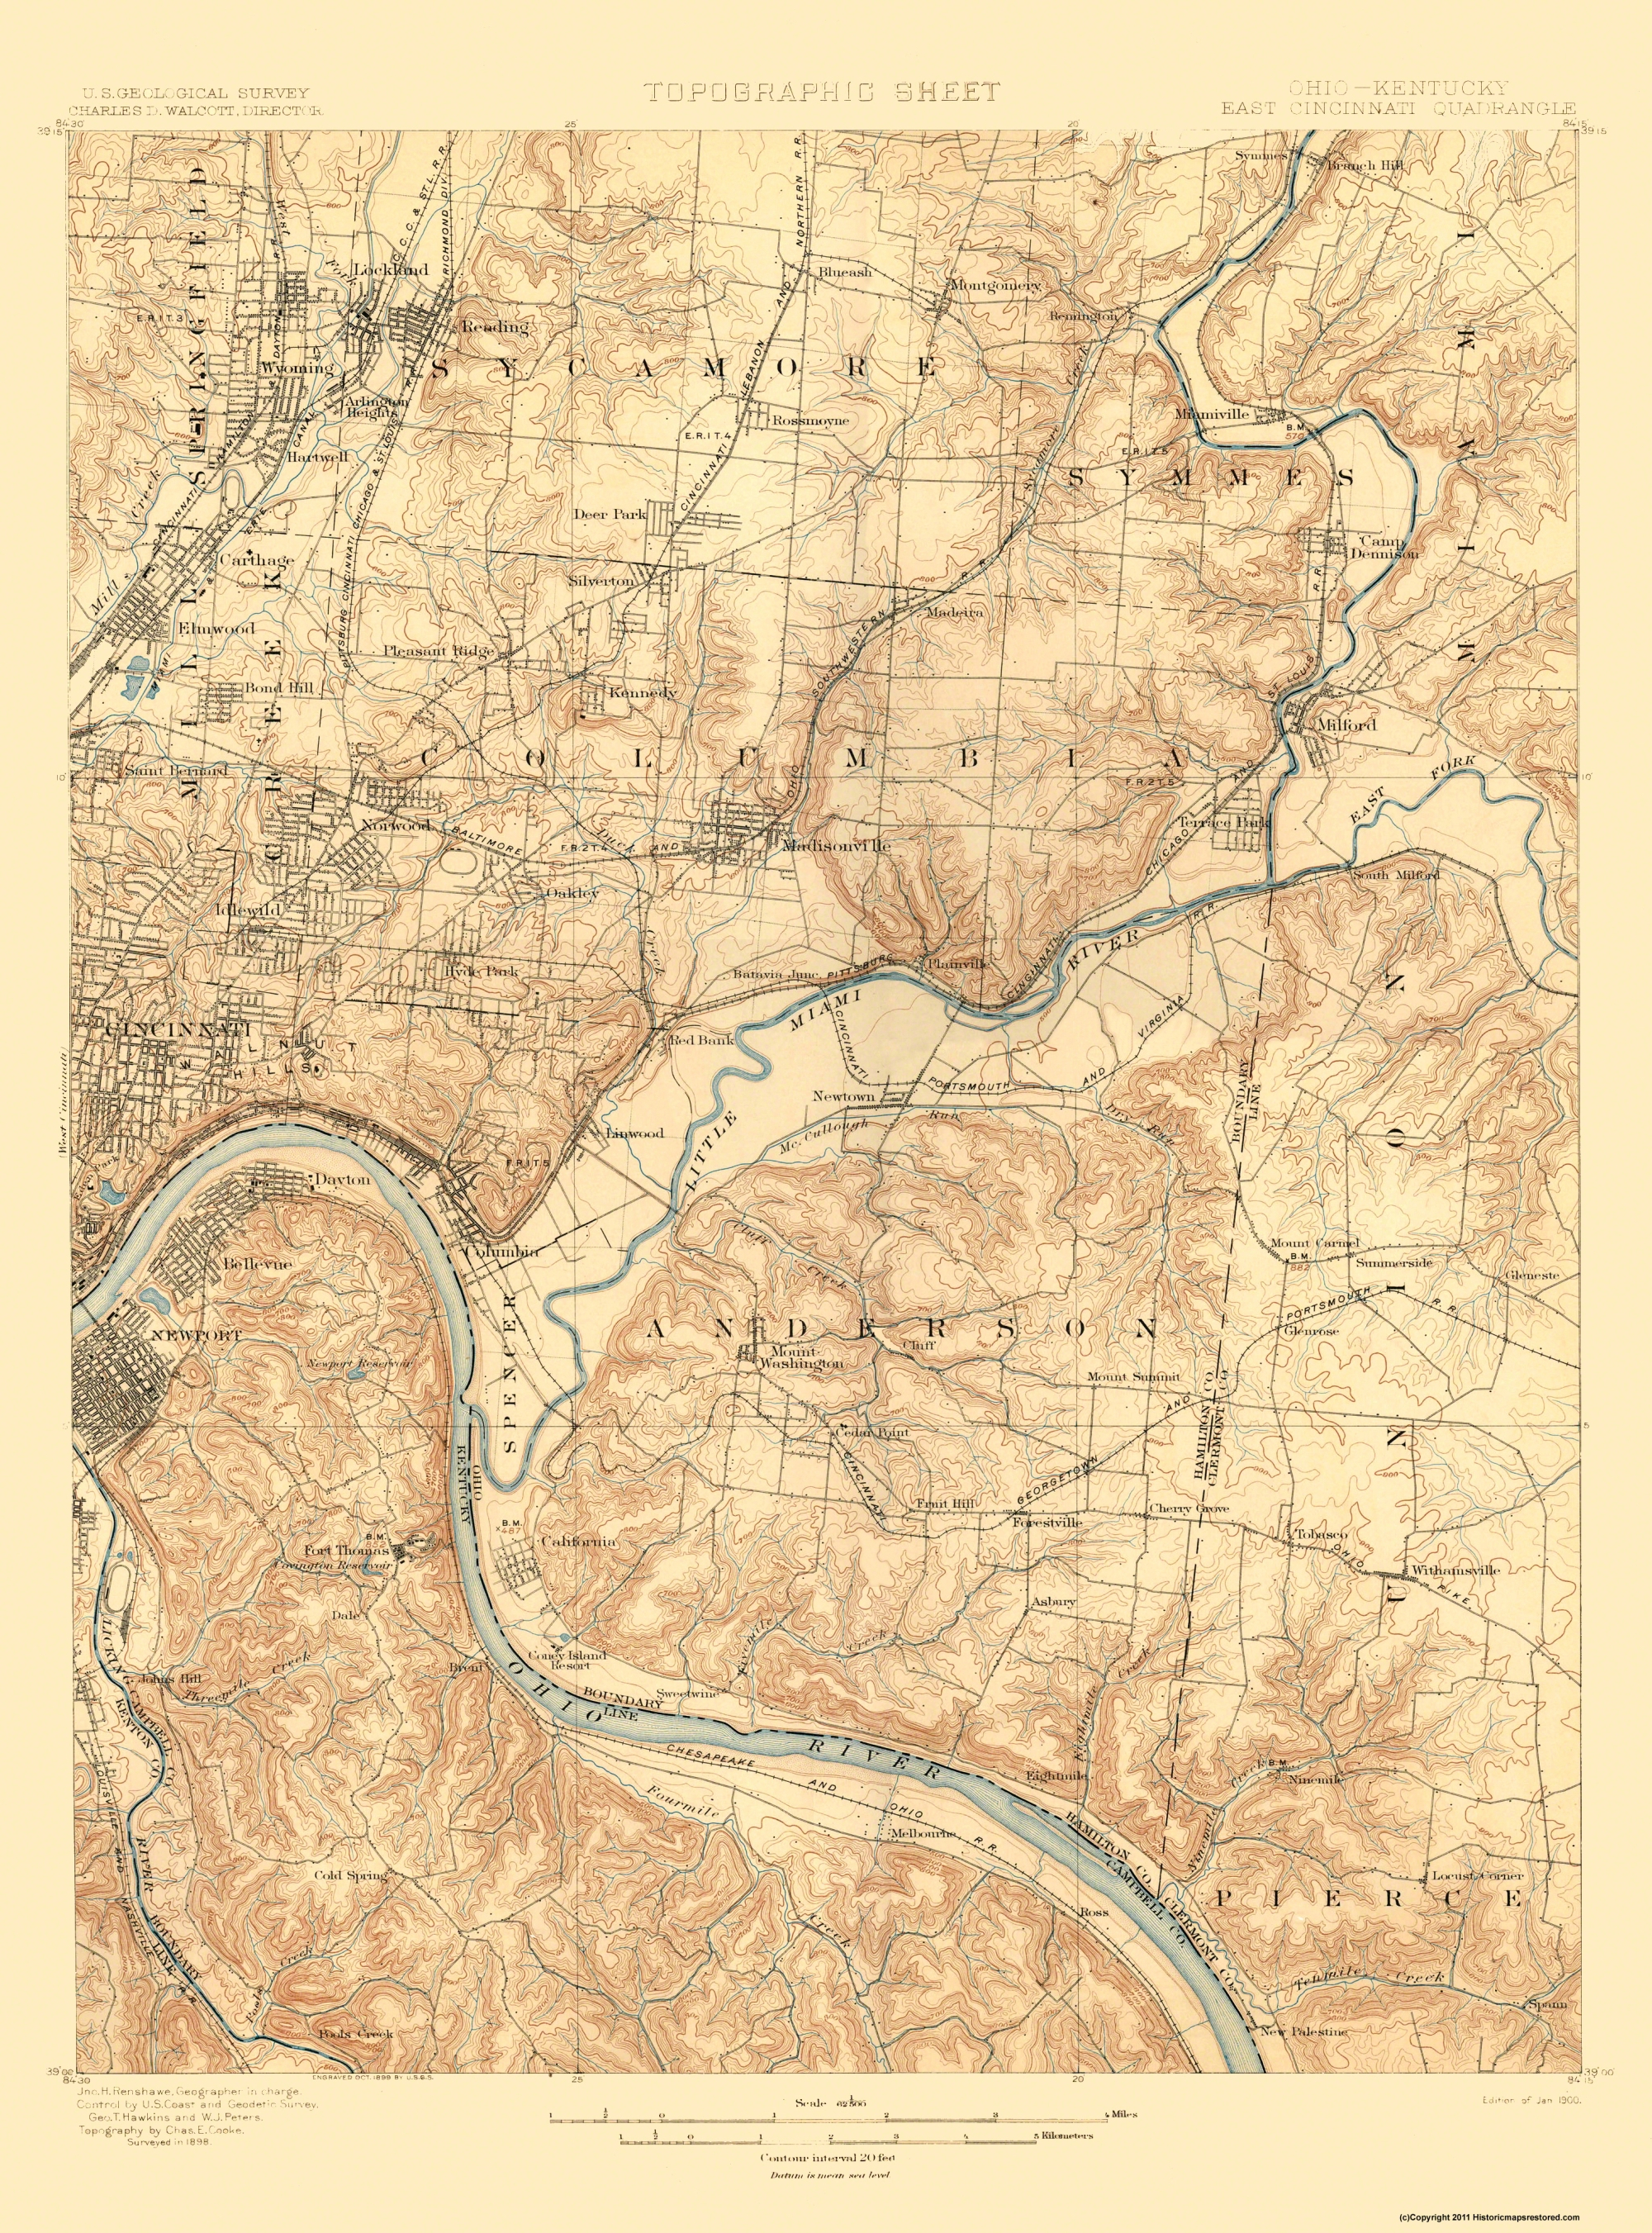 Topographical Map Cincinnati East Ohio Kentucky 1900